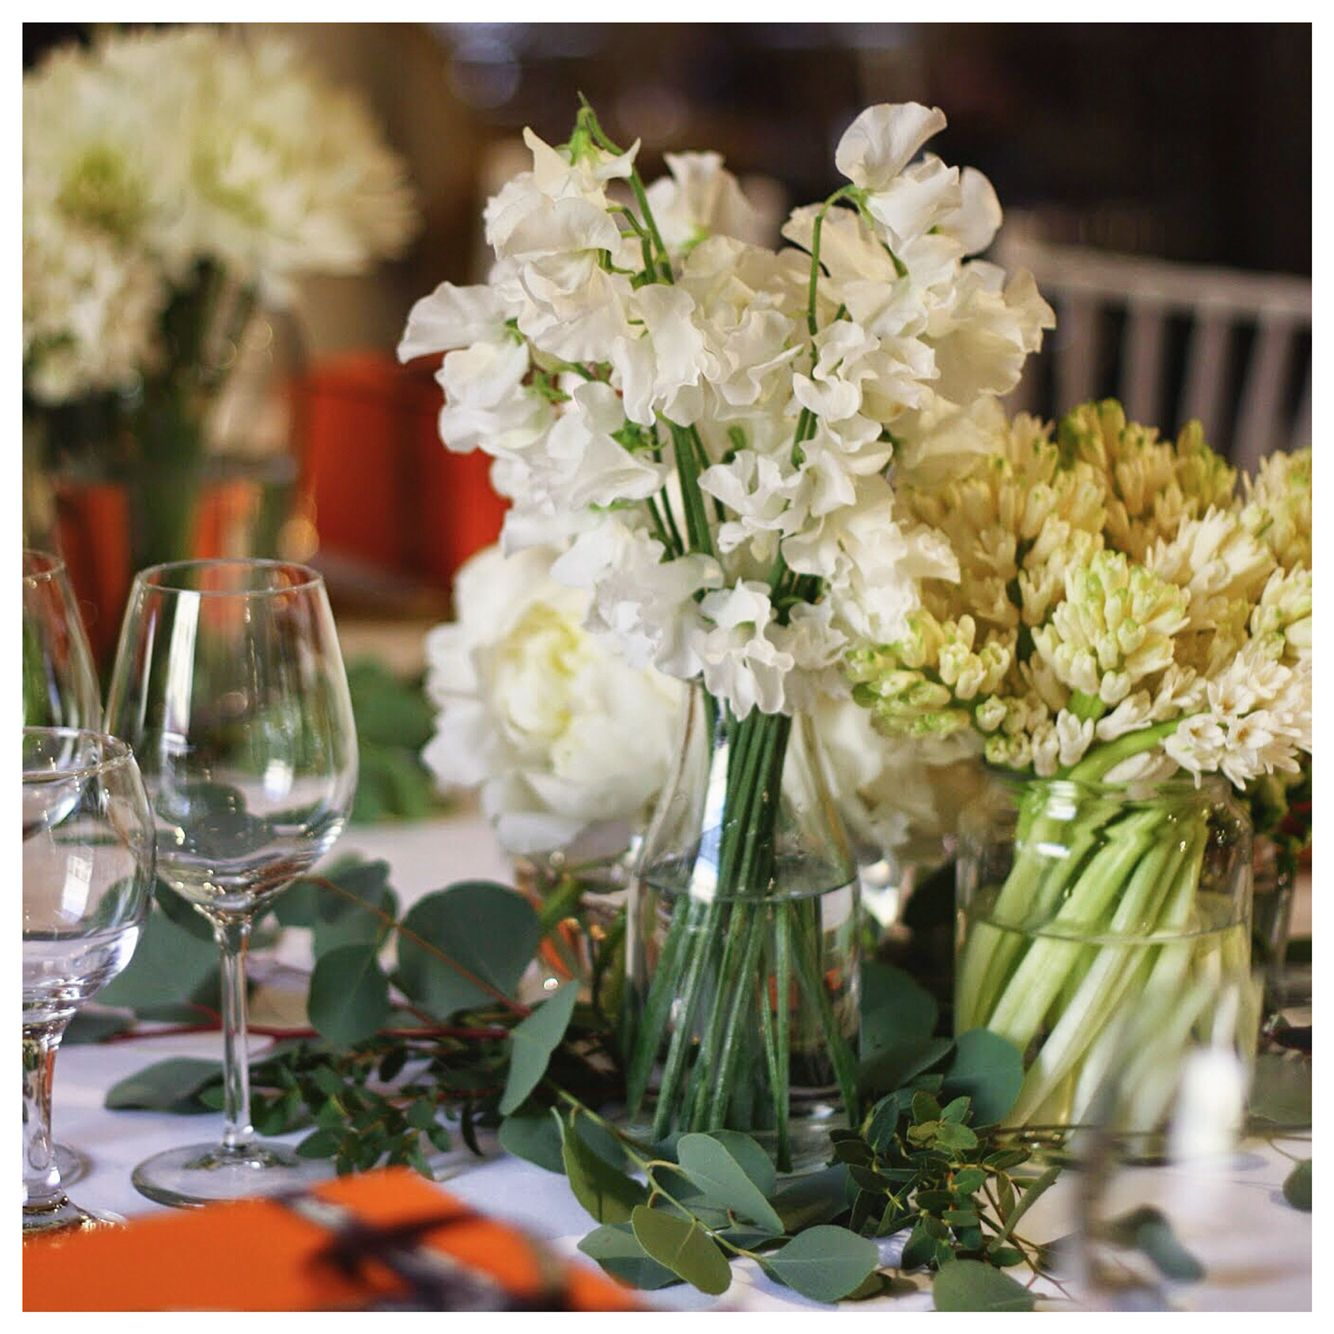 Clusters of white arrangements for an all white tablescape